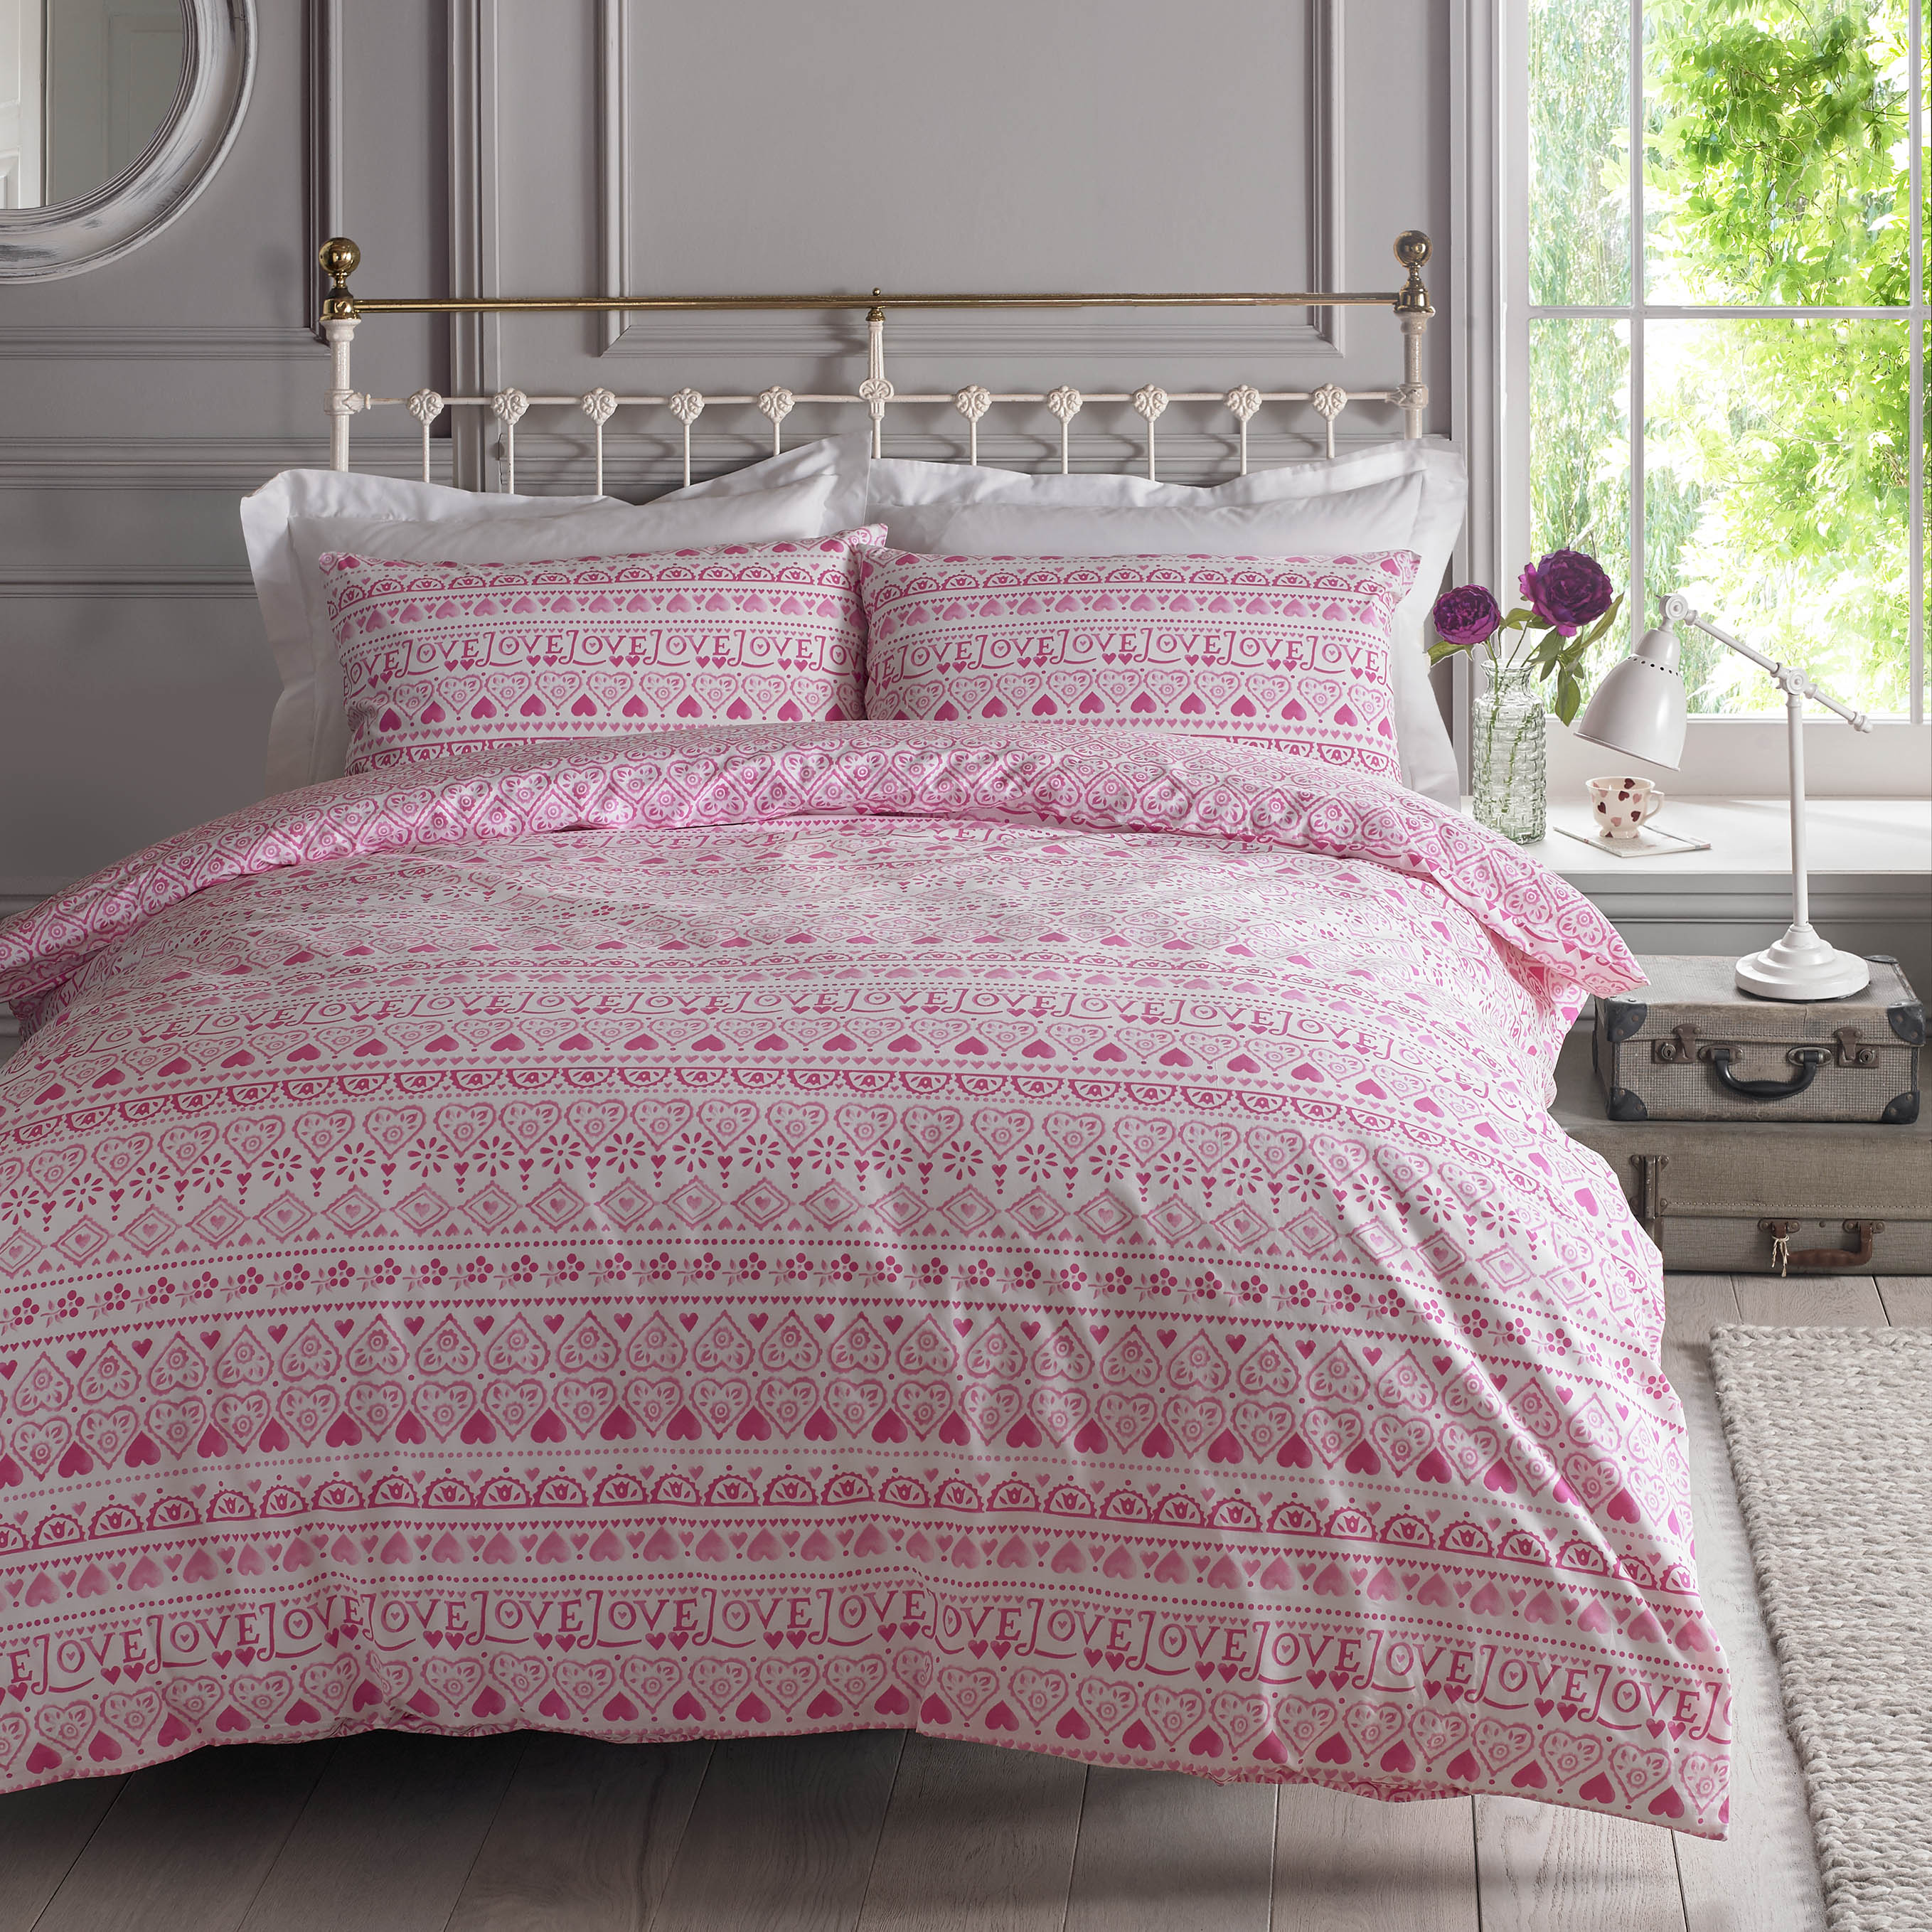 emma bridgewater launches a gorgeous new bedding range for. Black Bedroom Furniture Sets. Home Design Ideas